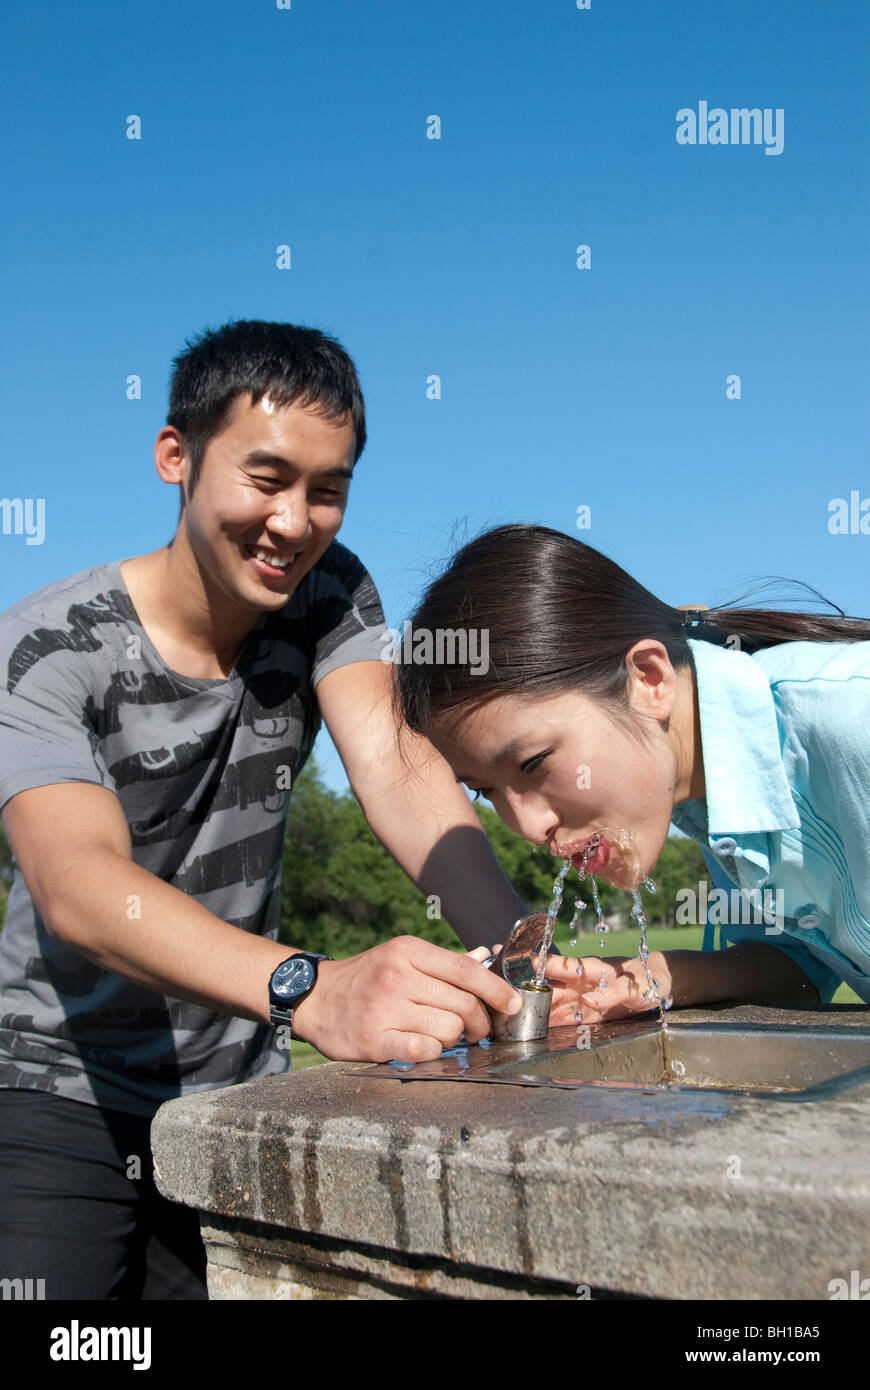 Young man assists young women at water fountain, Assiniboine Park, Winnipeg, Manitoba, Canada - Stock Image